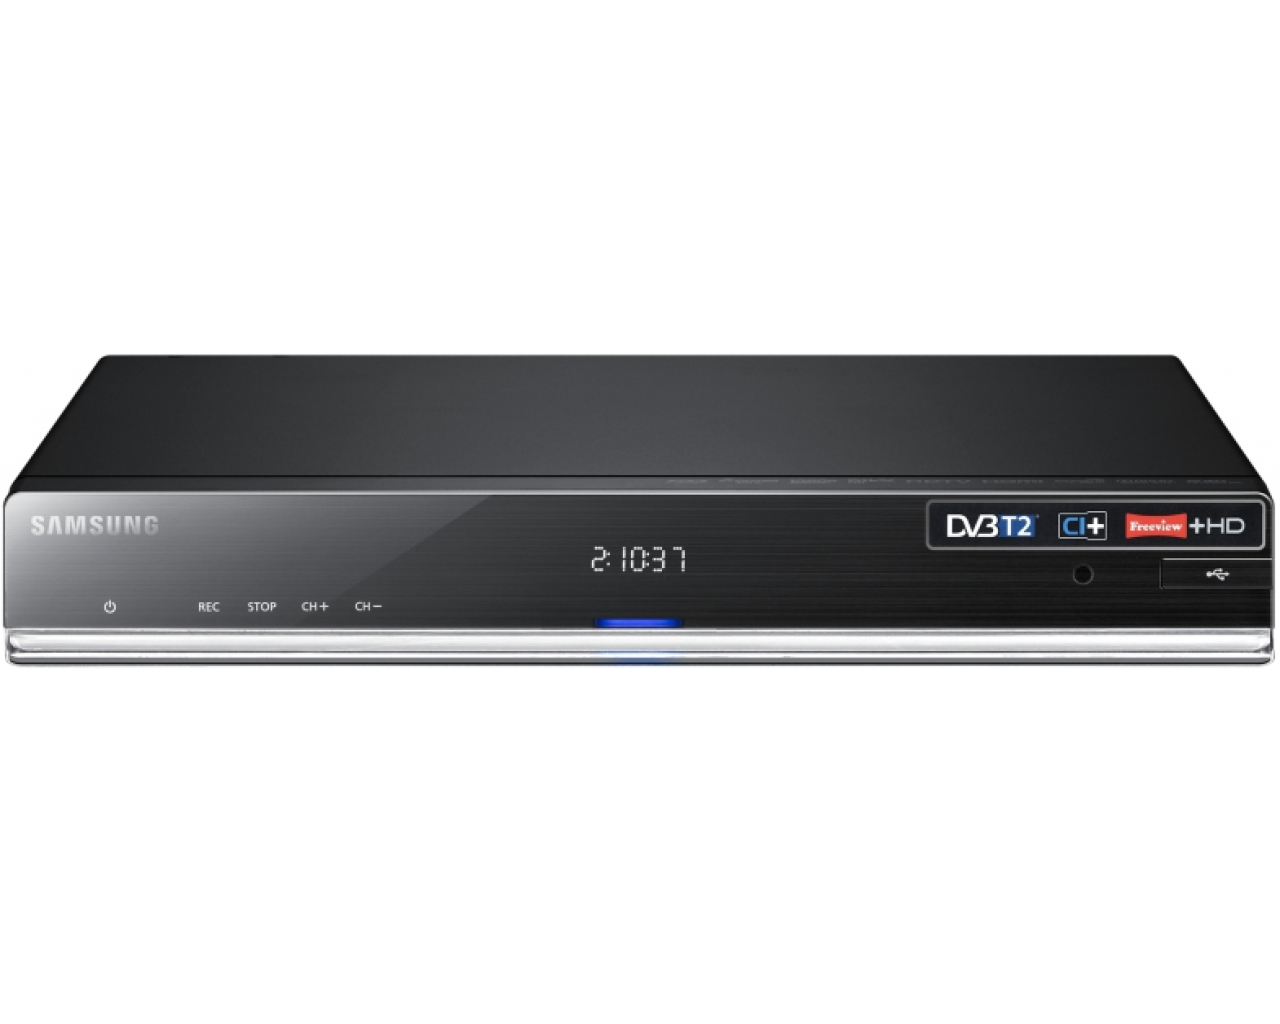 samsung bd dt7800 freeview hd box 500gb hard disk drive smart pvr with wi fi ebay. Black Bedroom Furniture Sets. Home Design Ideas